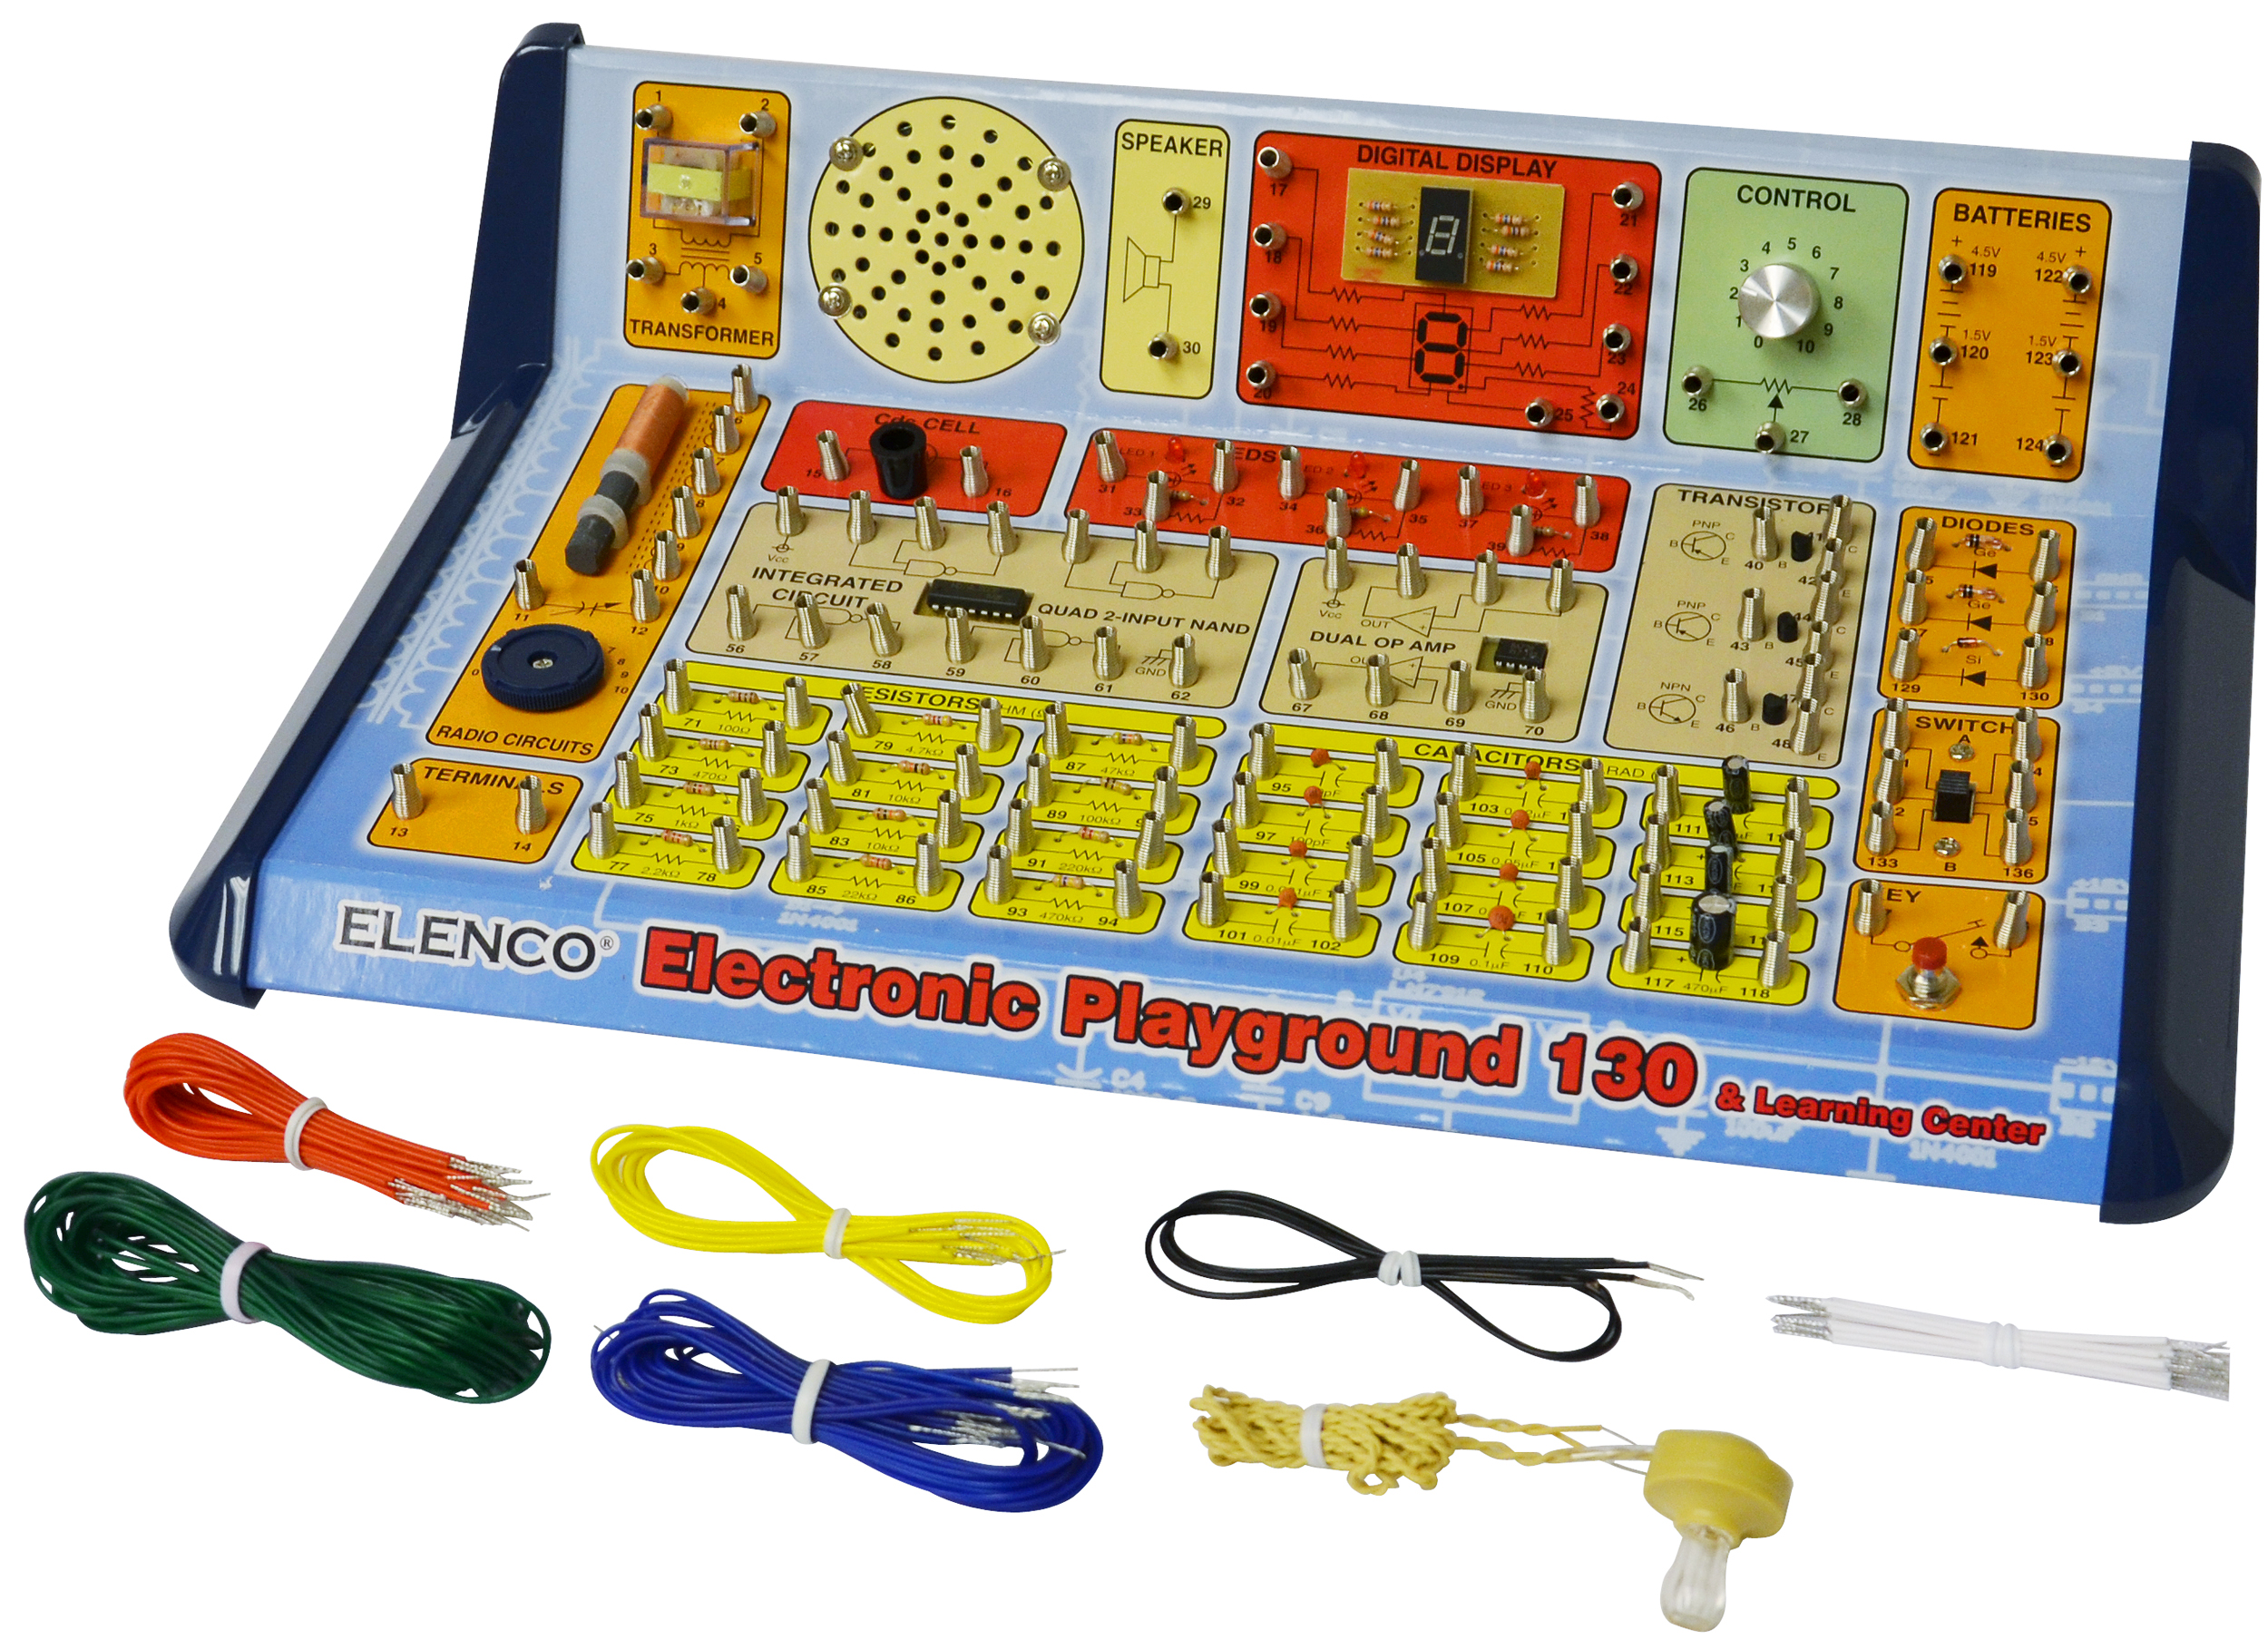 Elenco 130-in-1 Electronics Playground